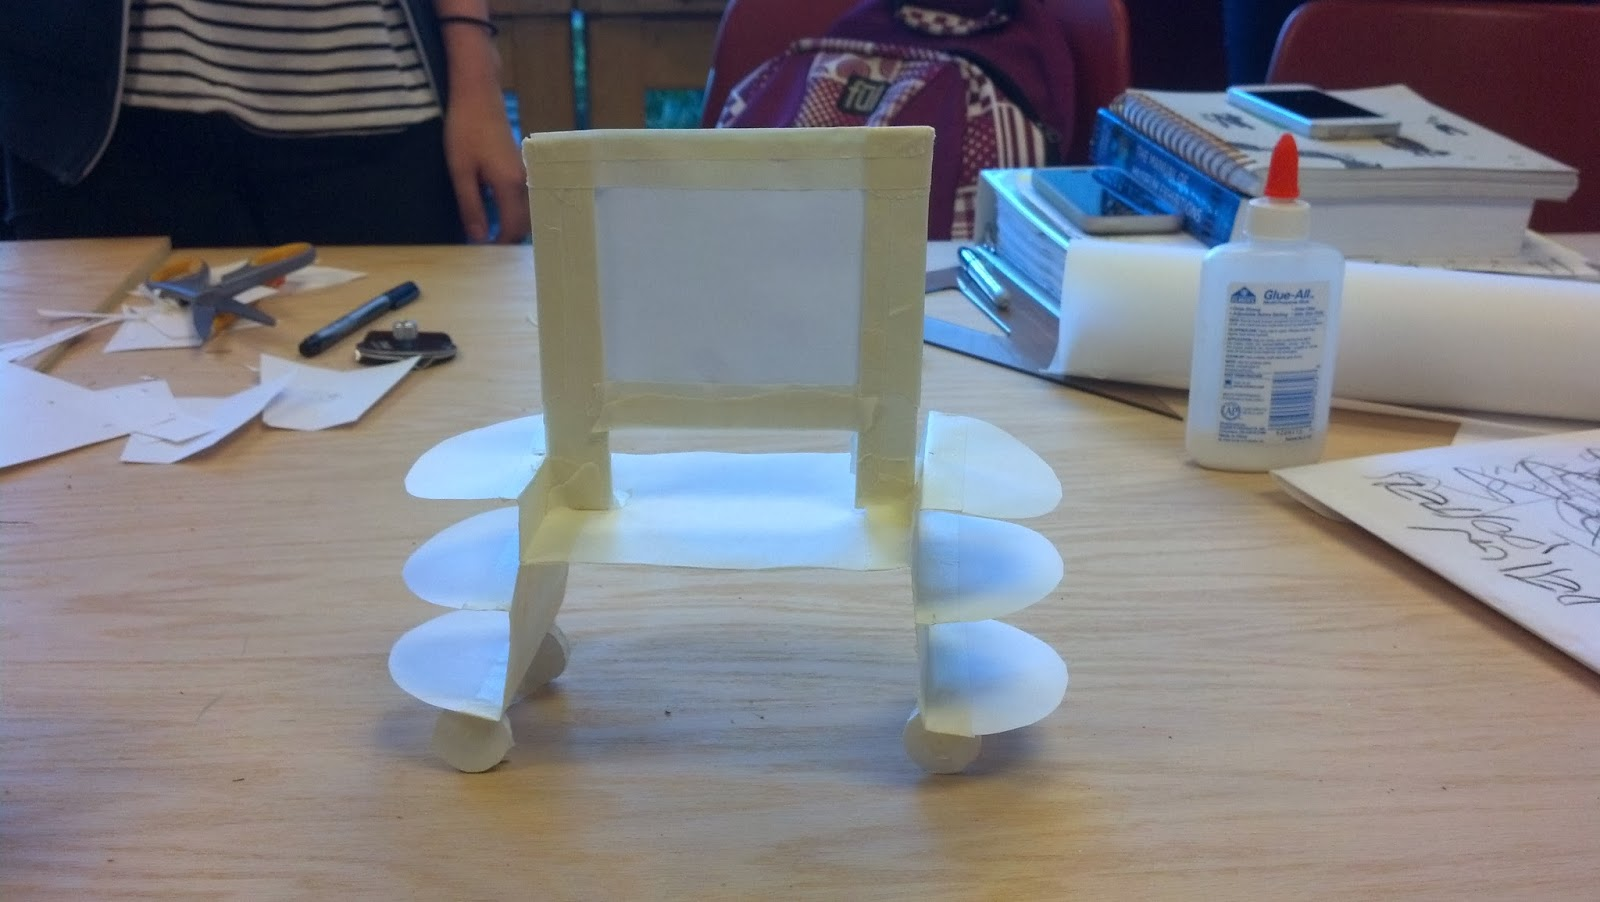 Image shows a small model of the exhibit display made of paper put together with tape. The model sits on a table.